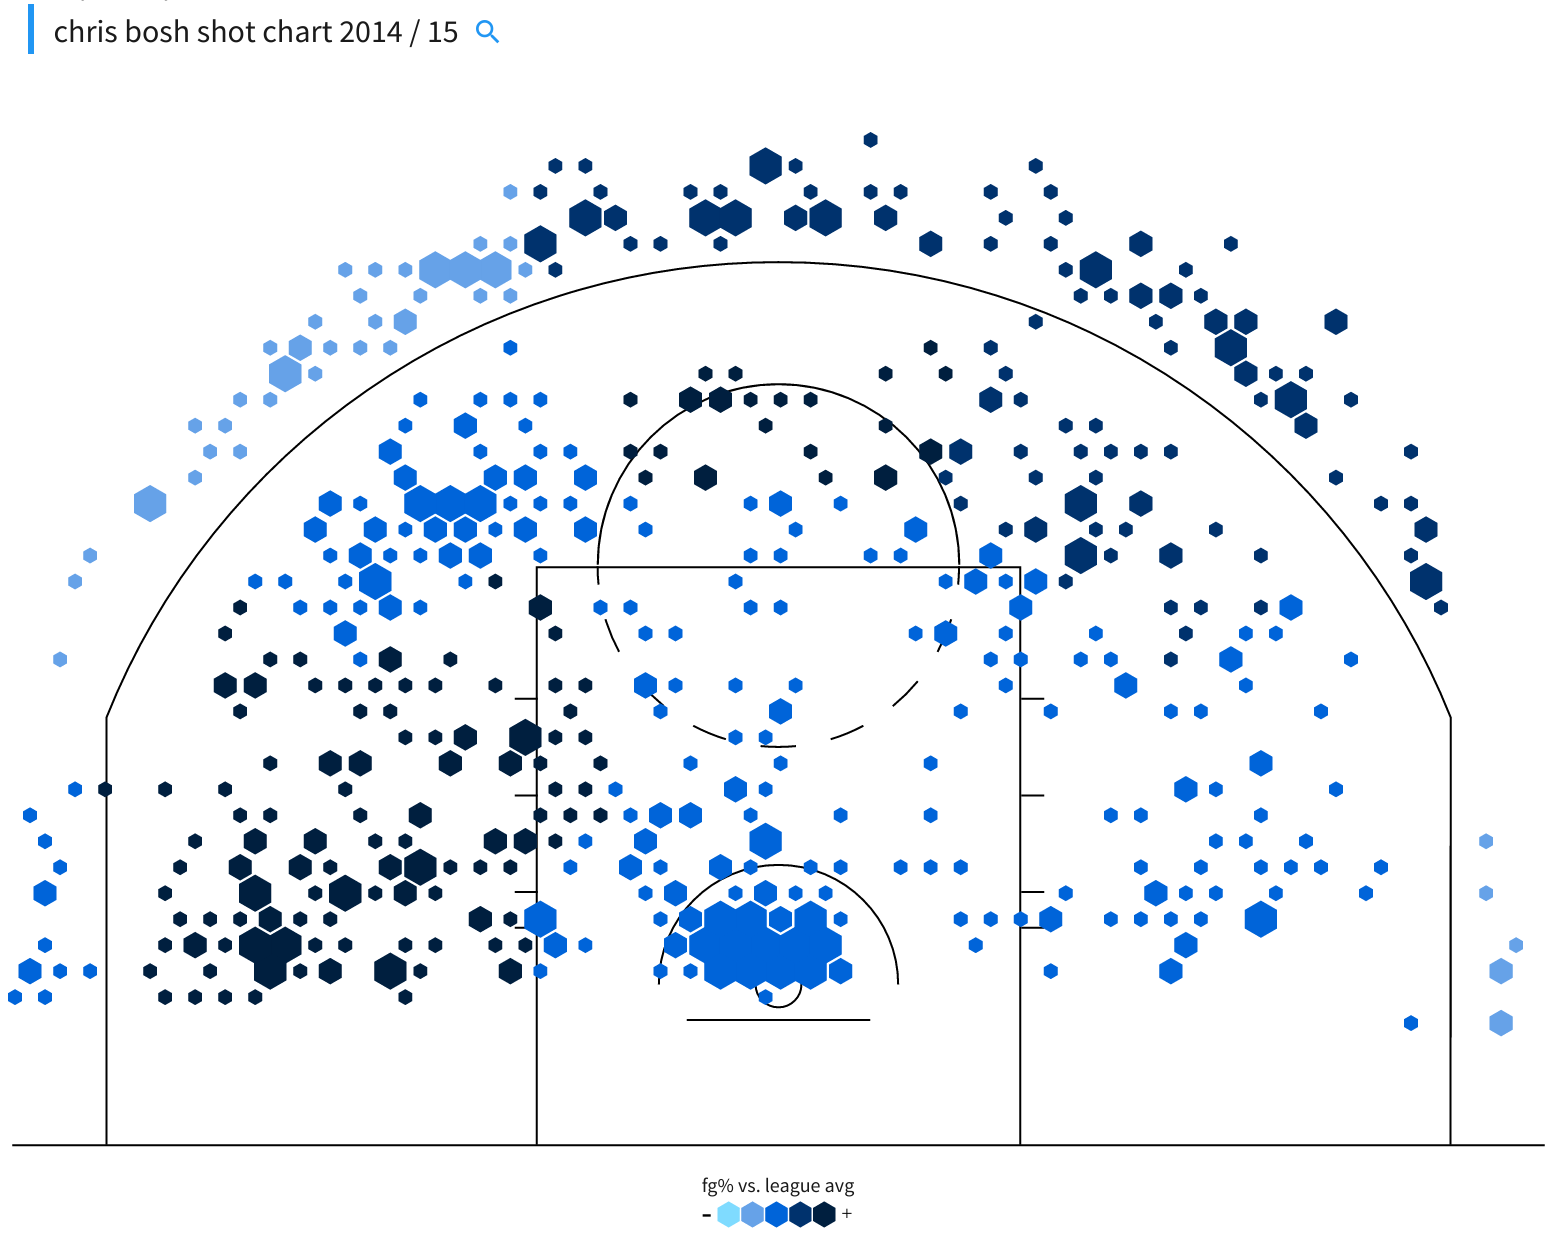 Chris Bosh shot chart 2014-15